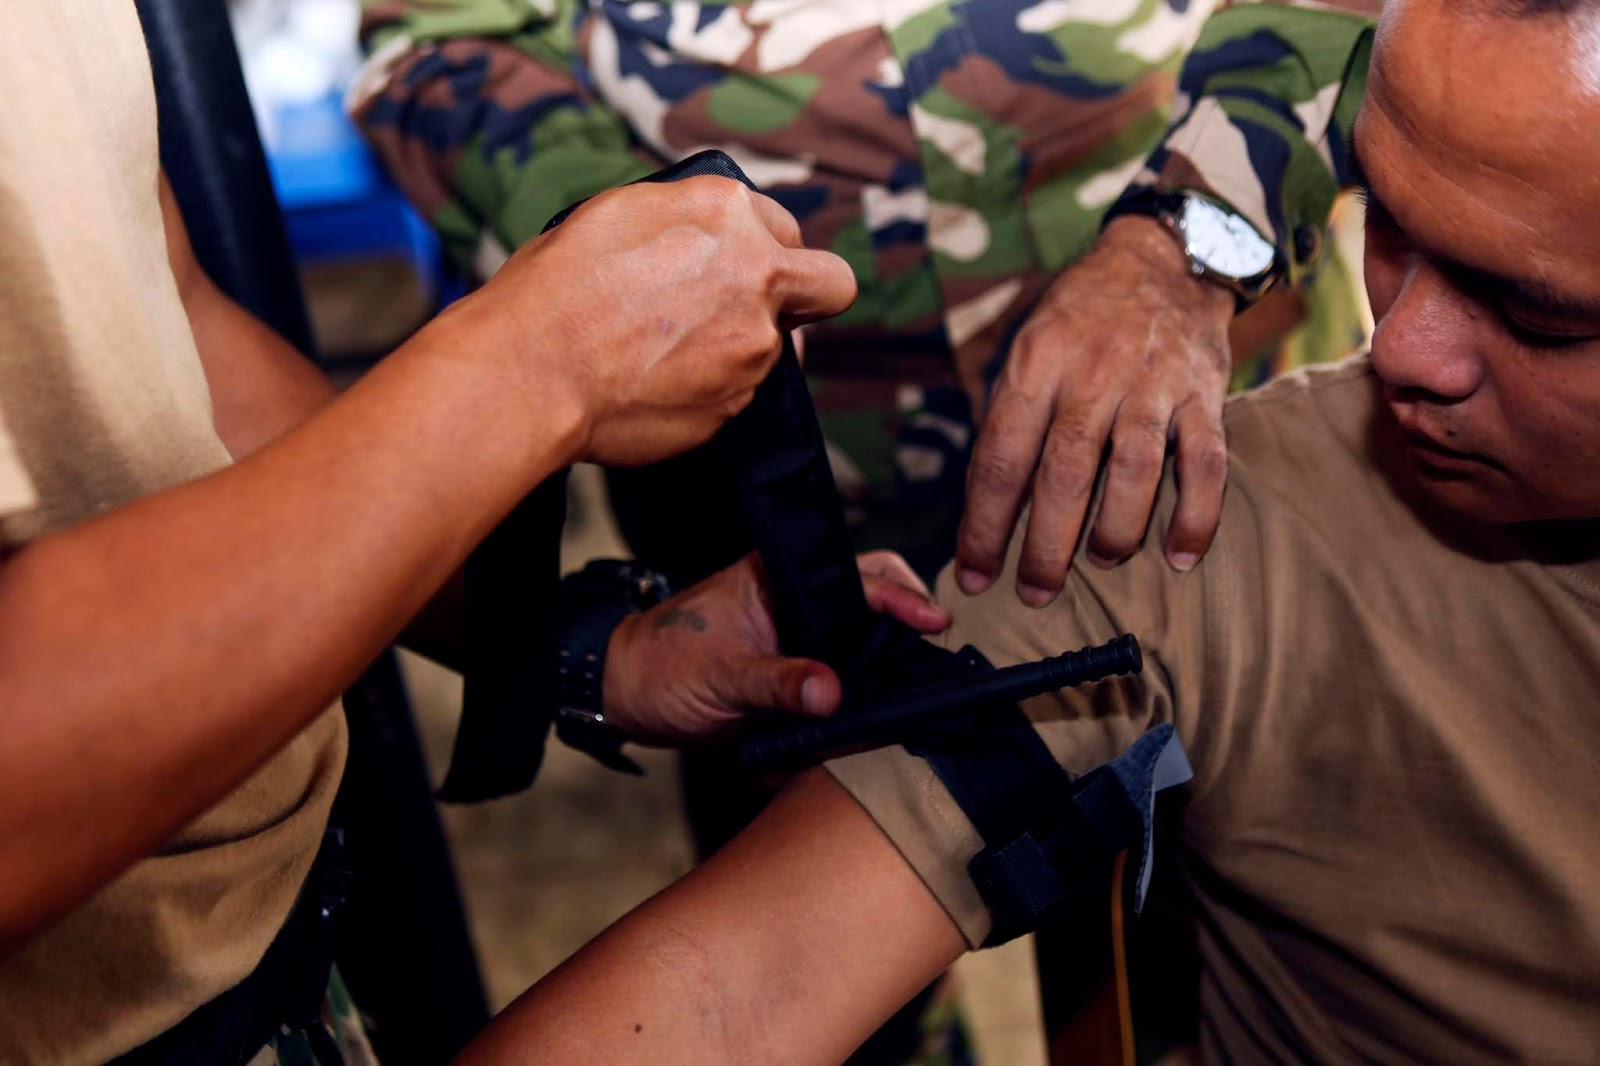 A military member practices putting a tourniquet on the arm of another military member